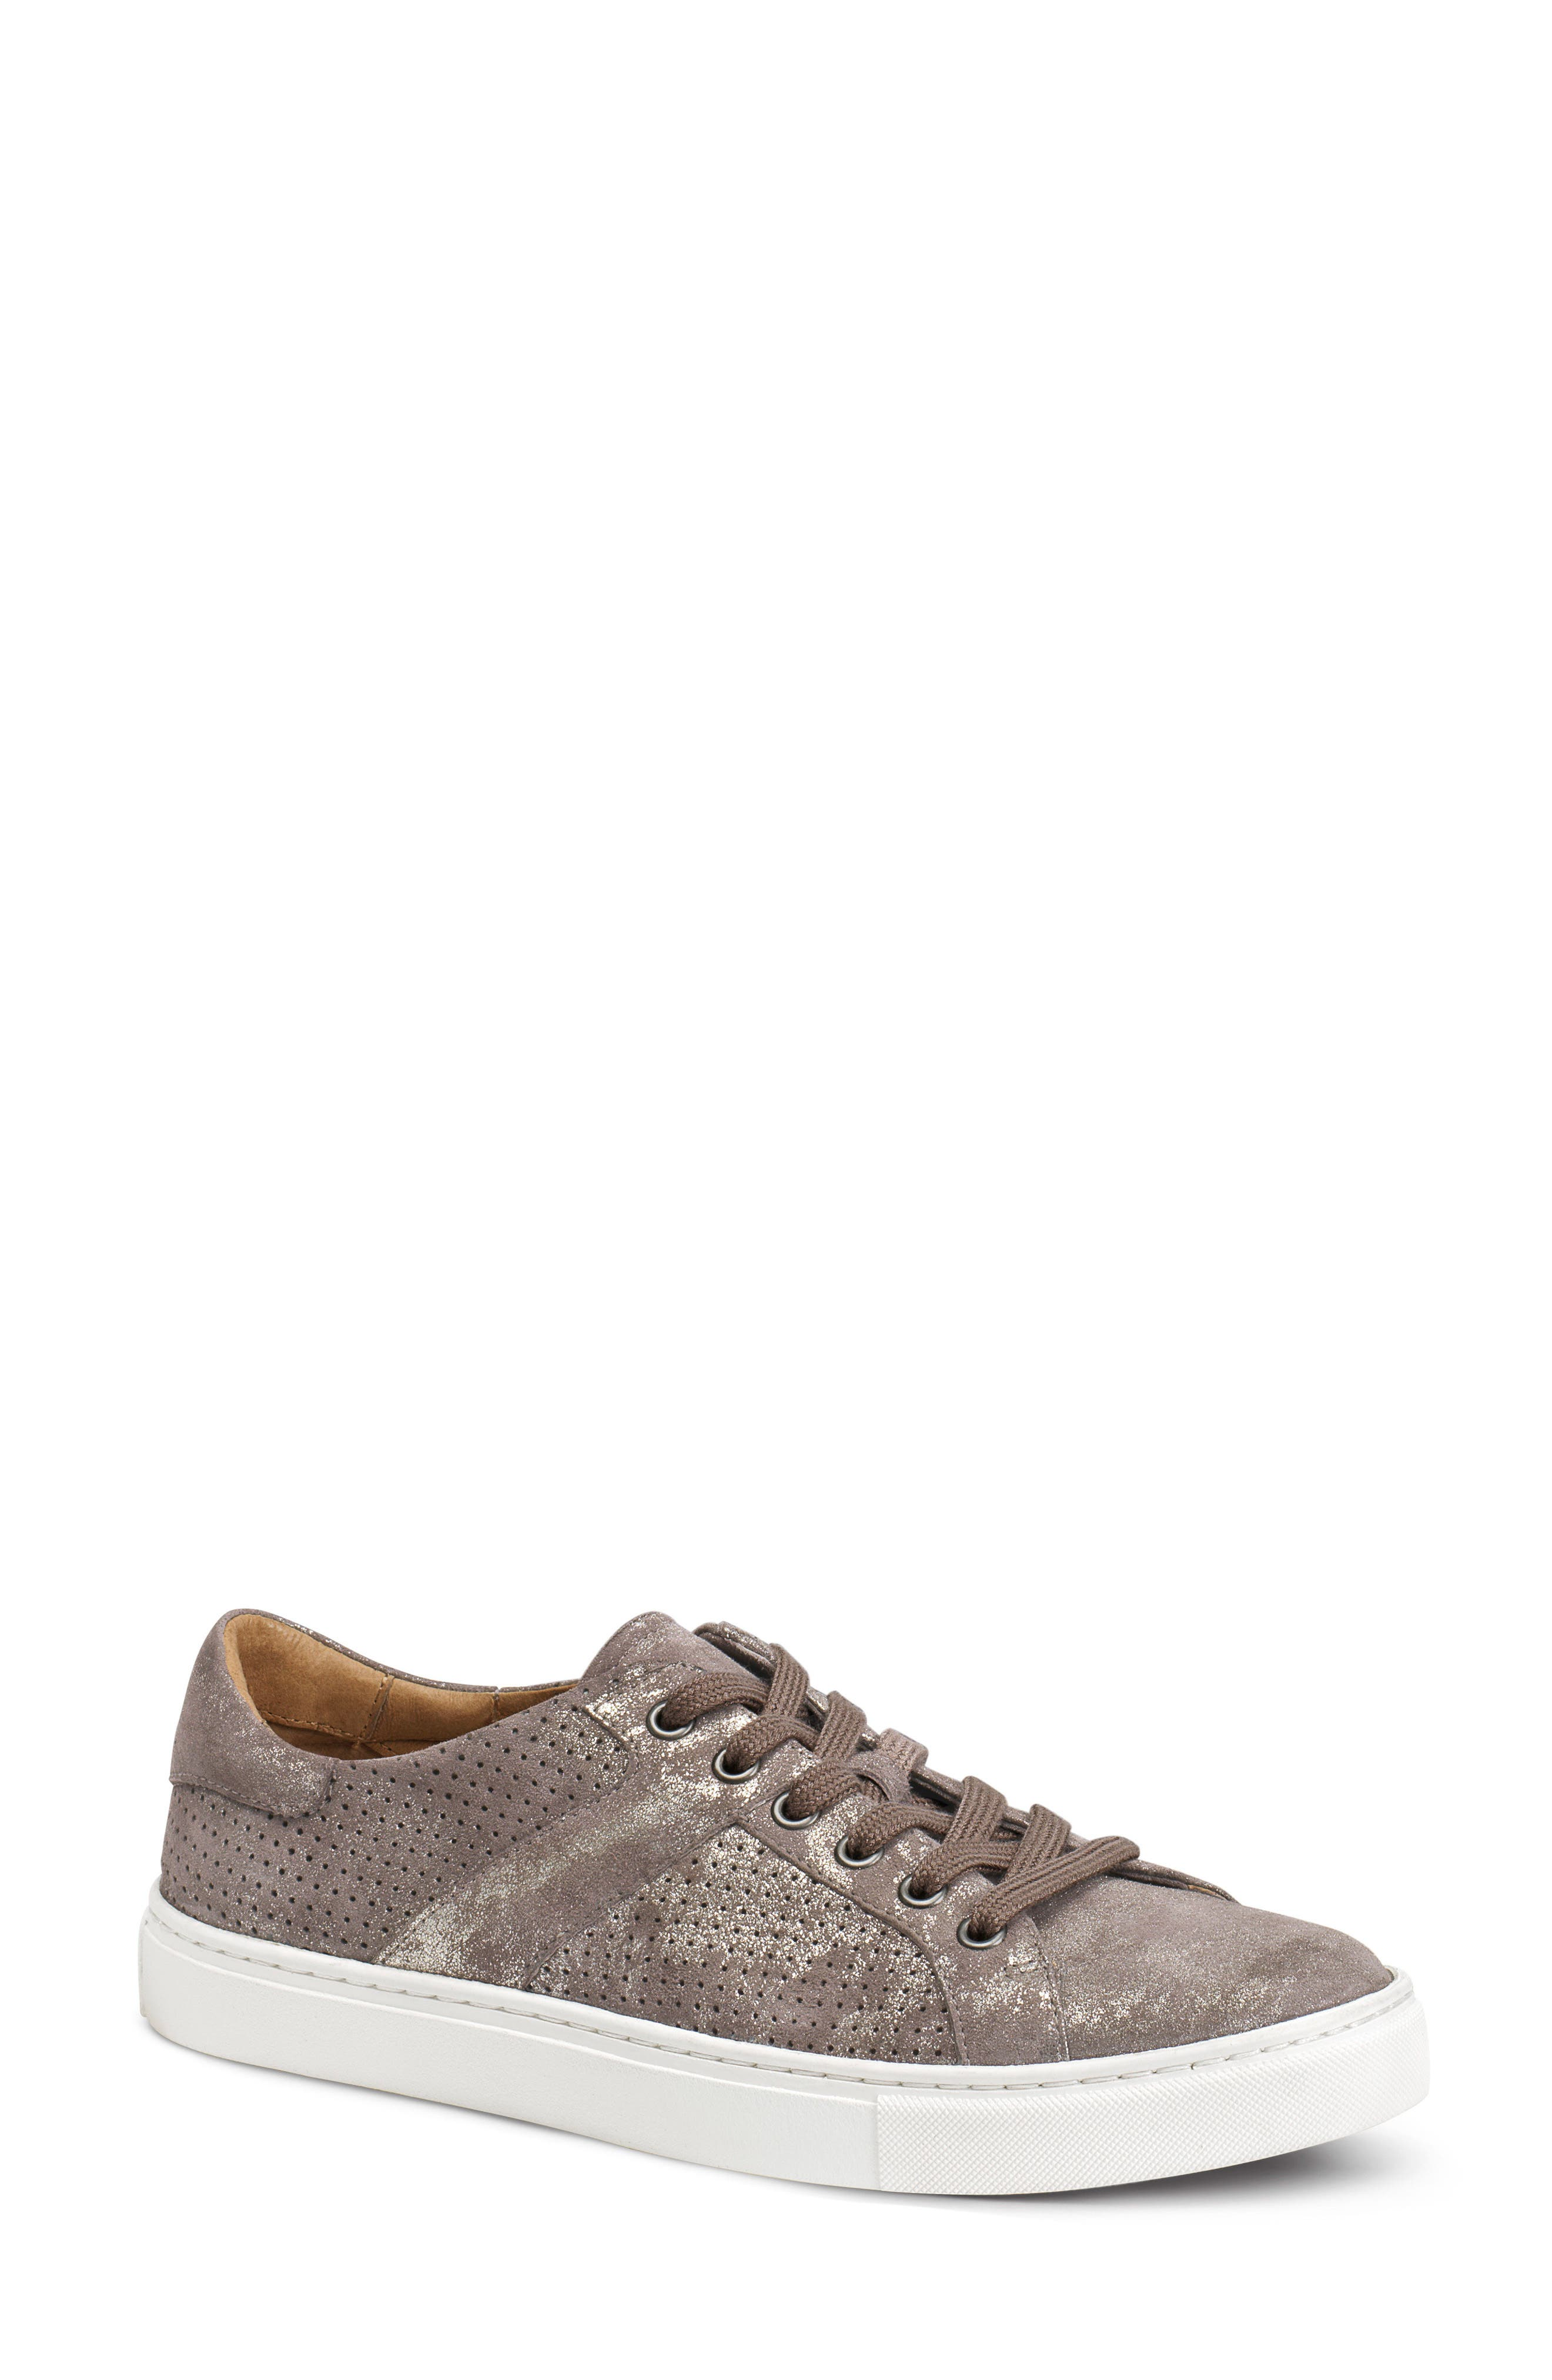 Lindsey Sneaker,                             Main thumbnail 1, color,                             Pewter Suede